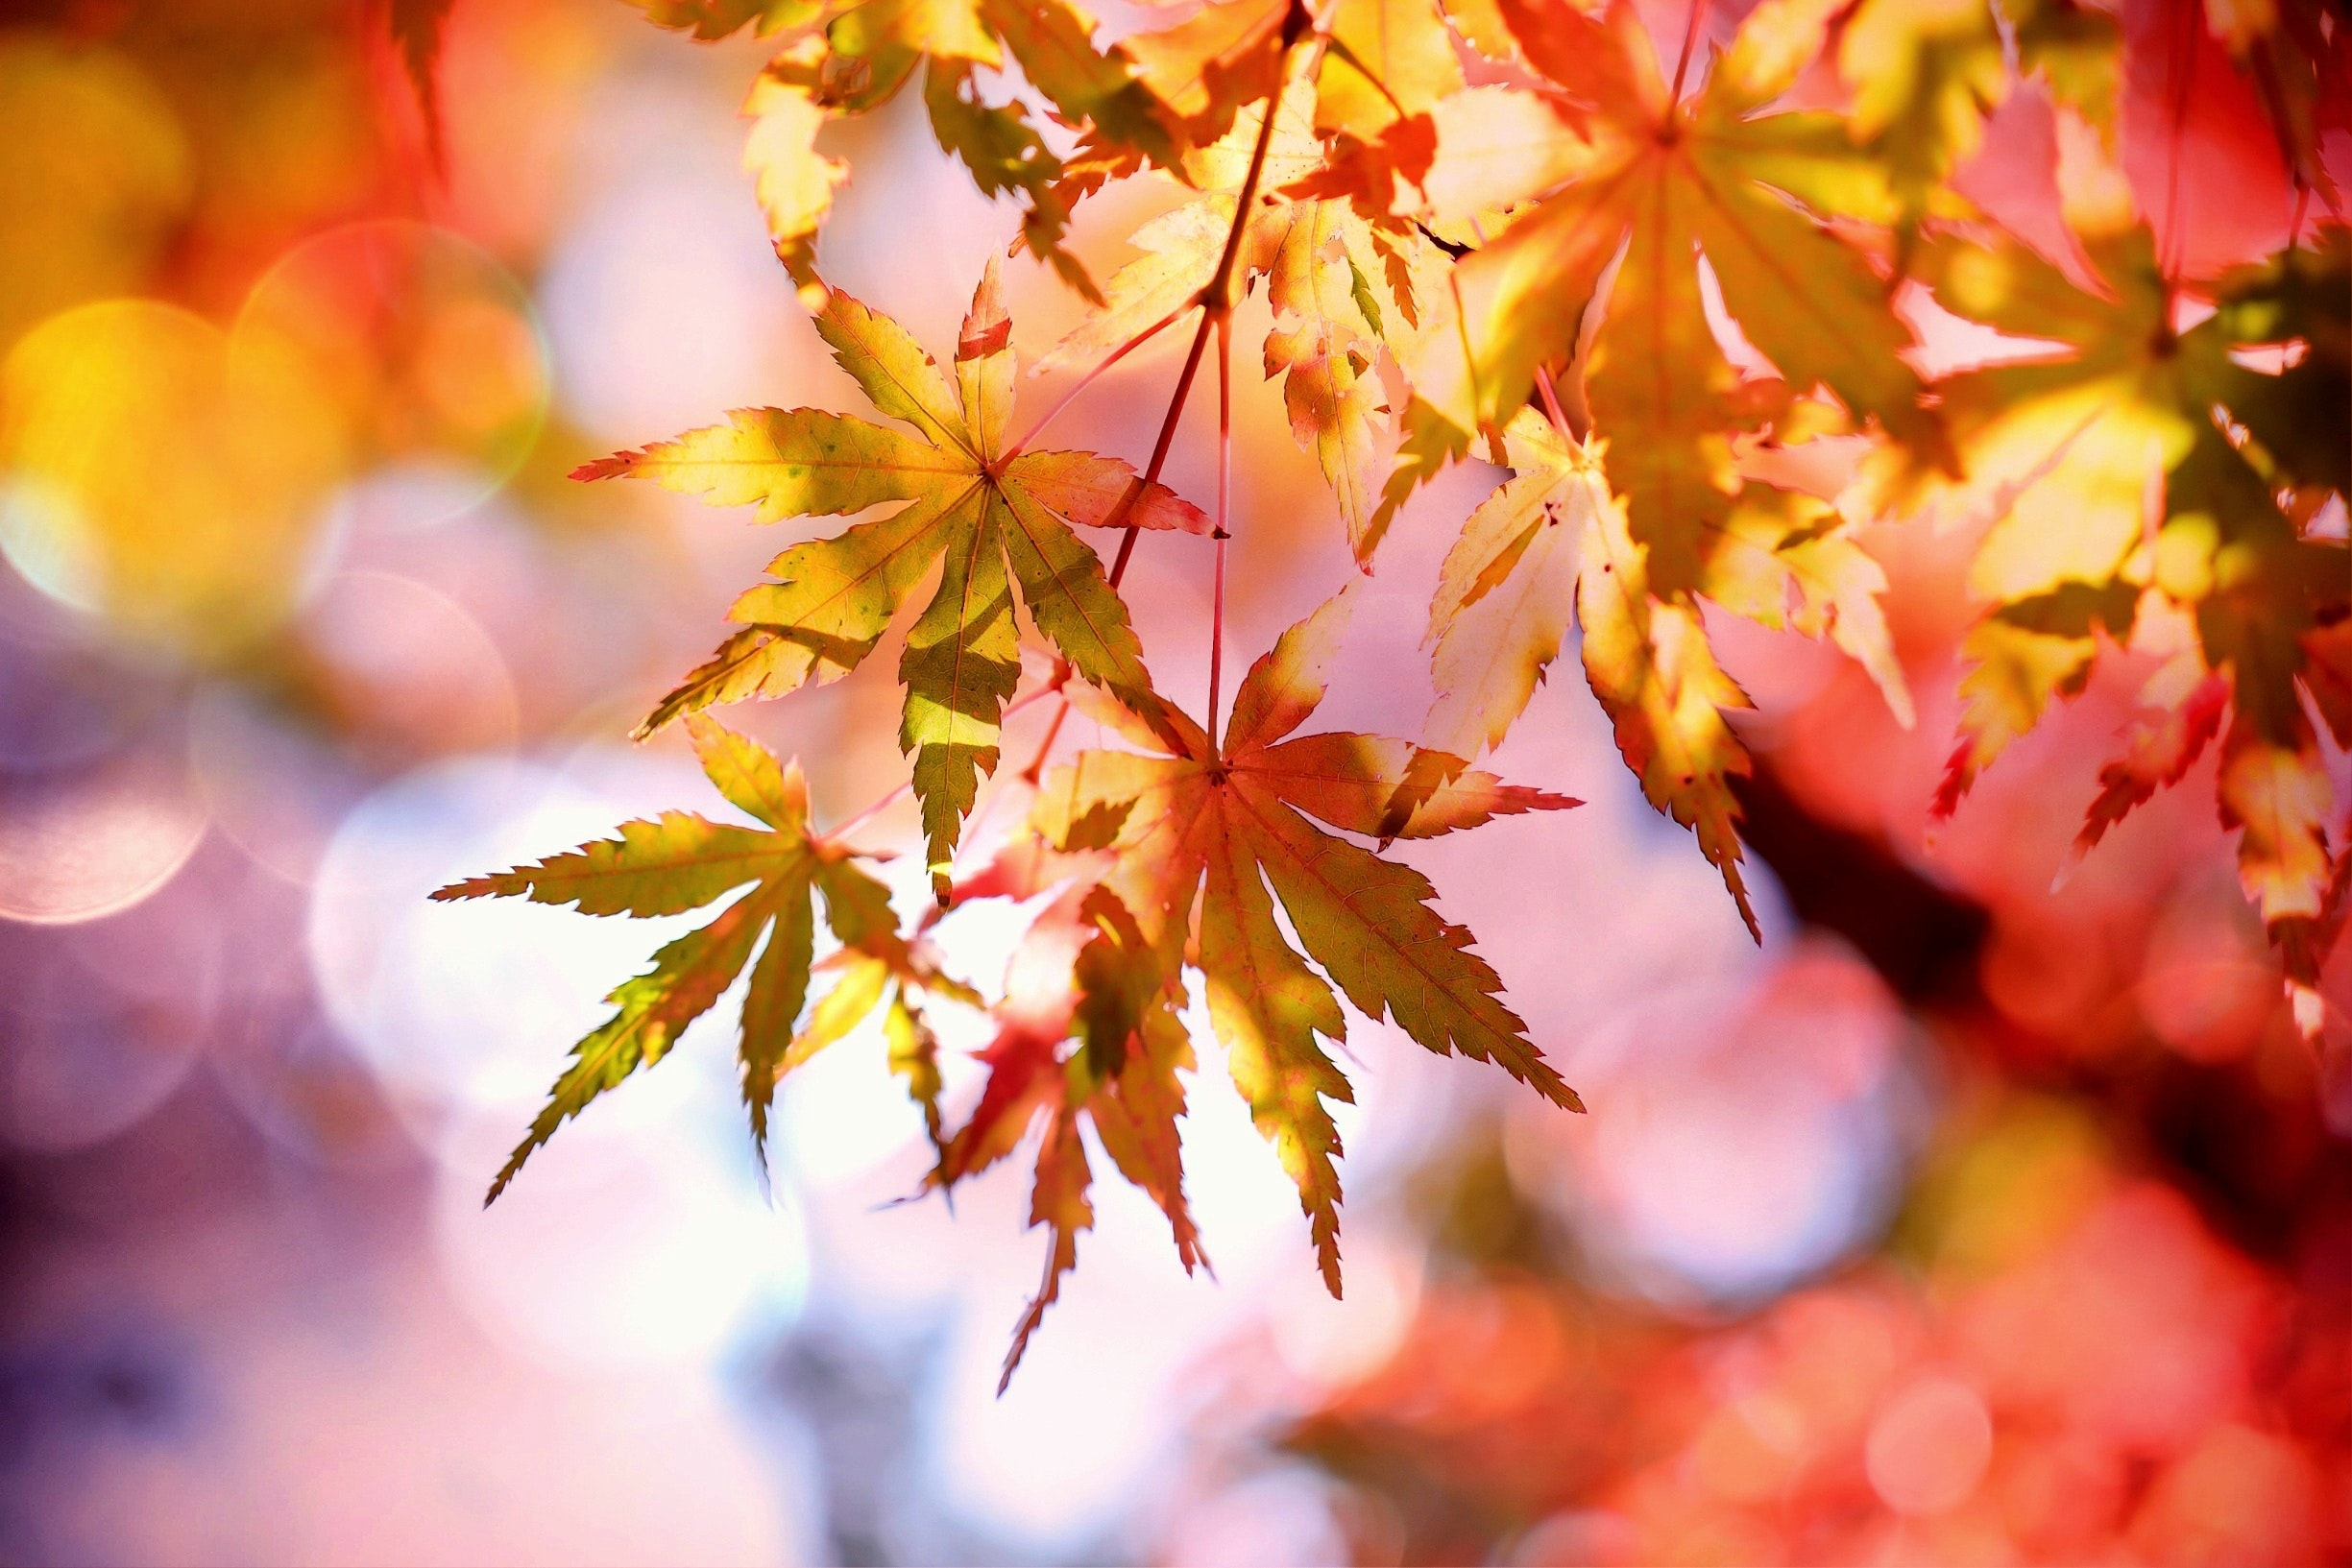 Red, orange, and yellow leaves against a bright sky